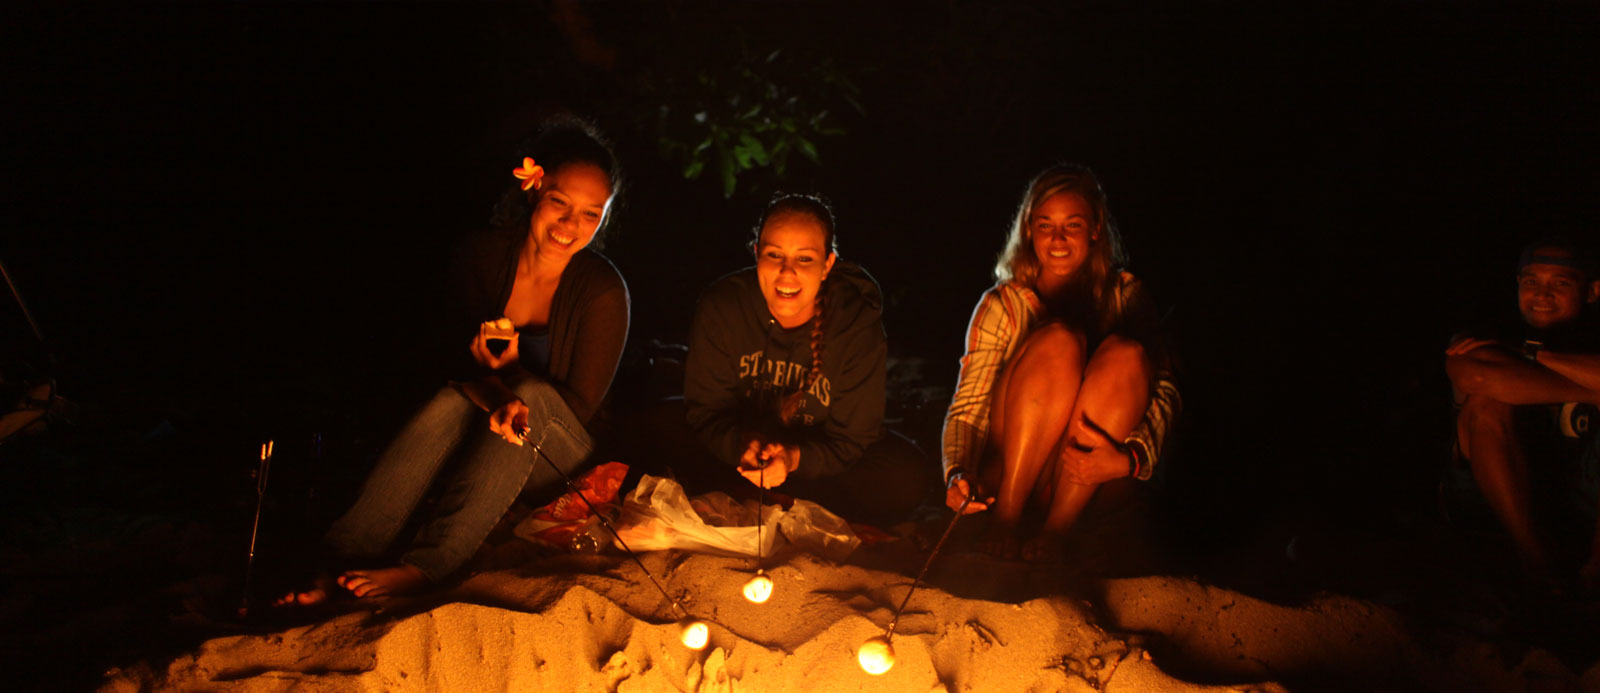 marshmallow roasting with friends